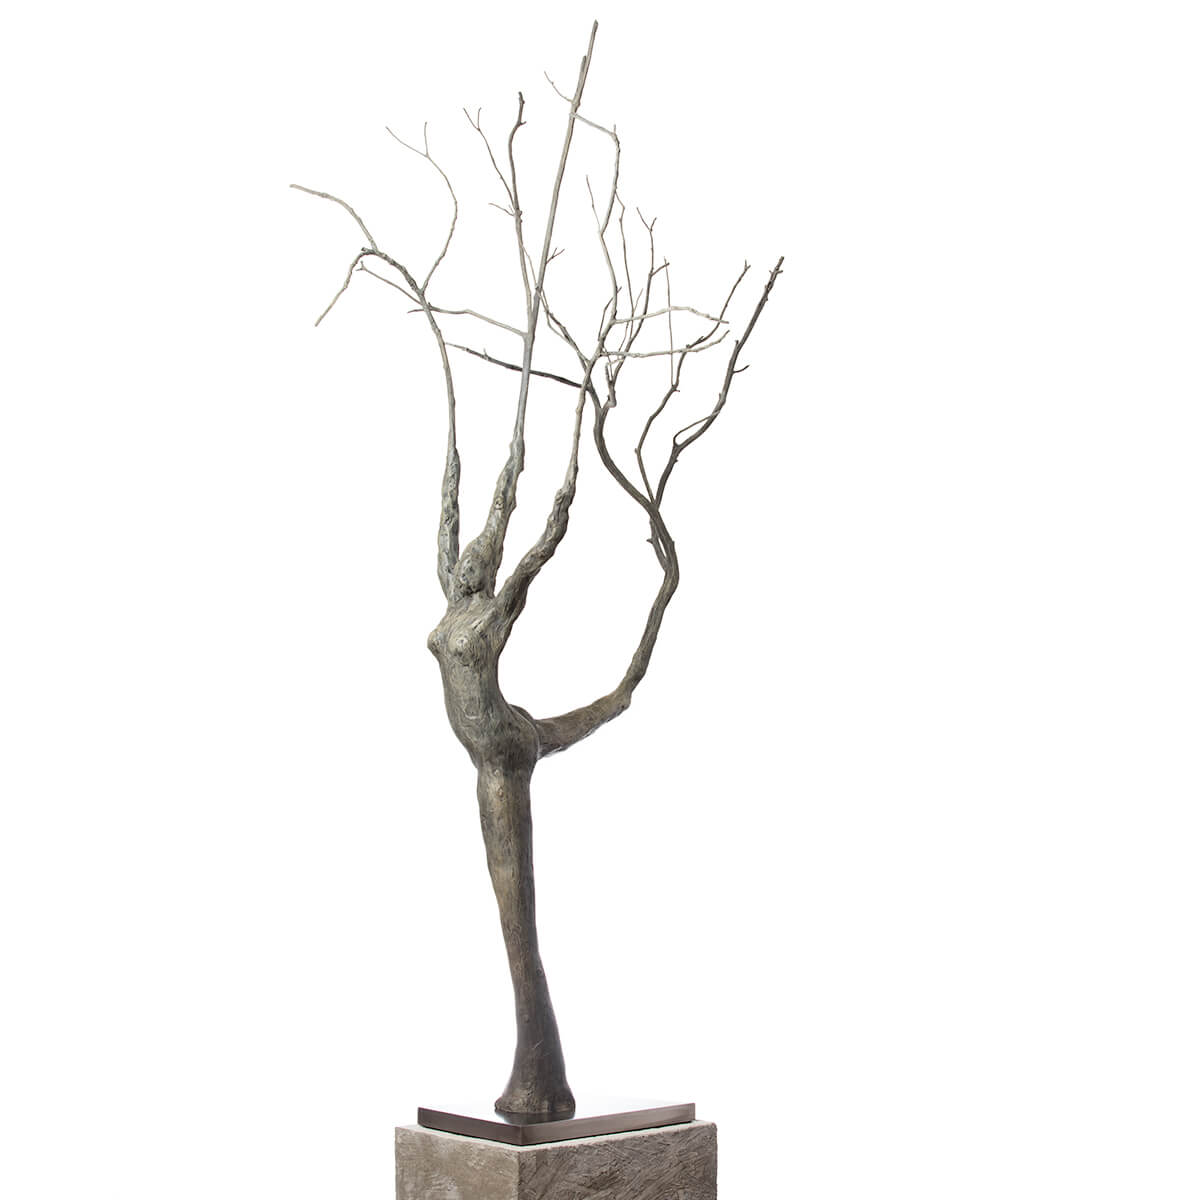 Robert-Helle-Sculpture-Gallery-Abstract-Lady-in-the-Tree-2-1200x1200